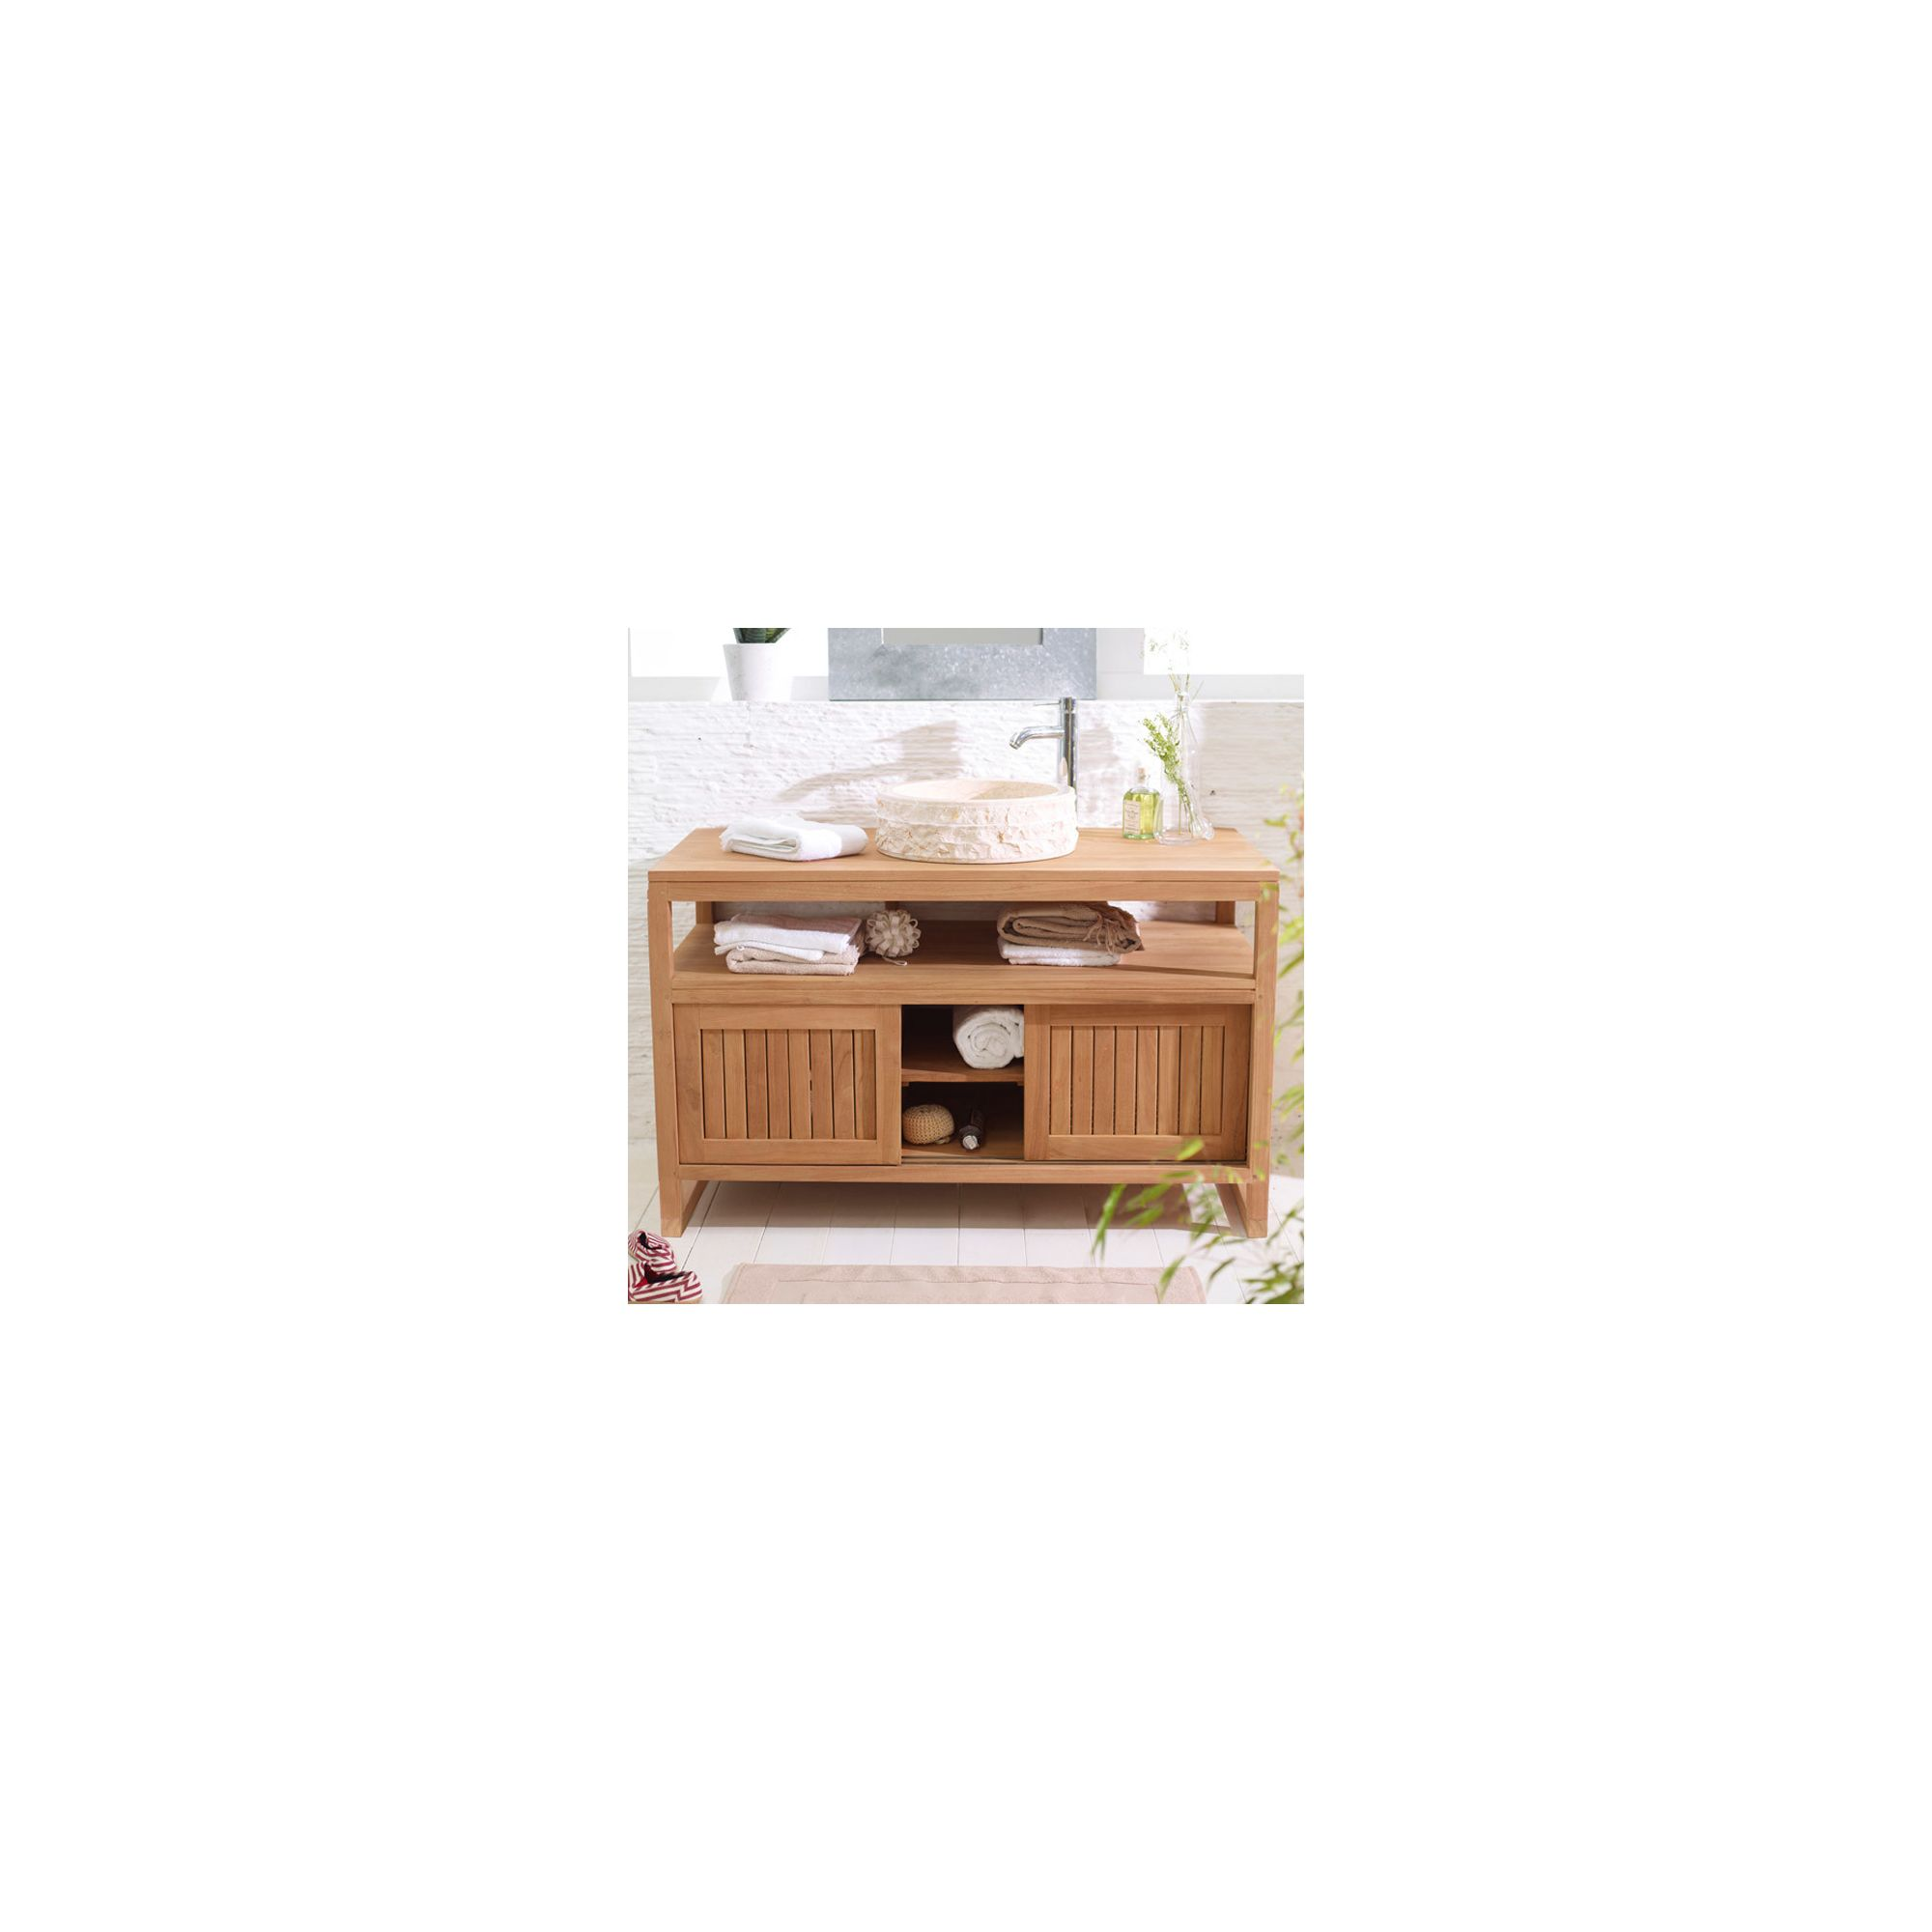 Tikamoon Colonial Duo Teak Vanity Cabinet at Tescos Direct